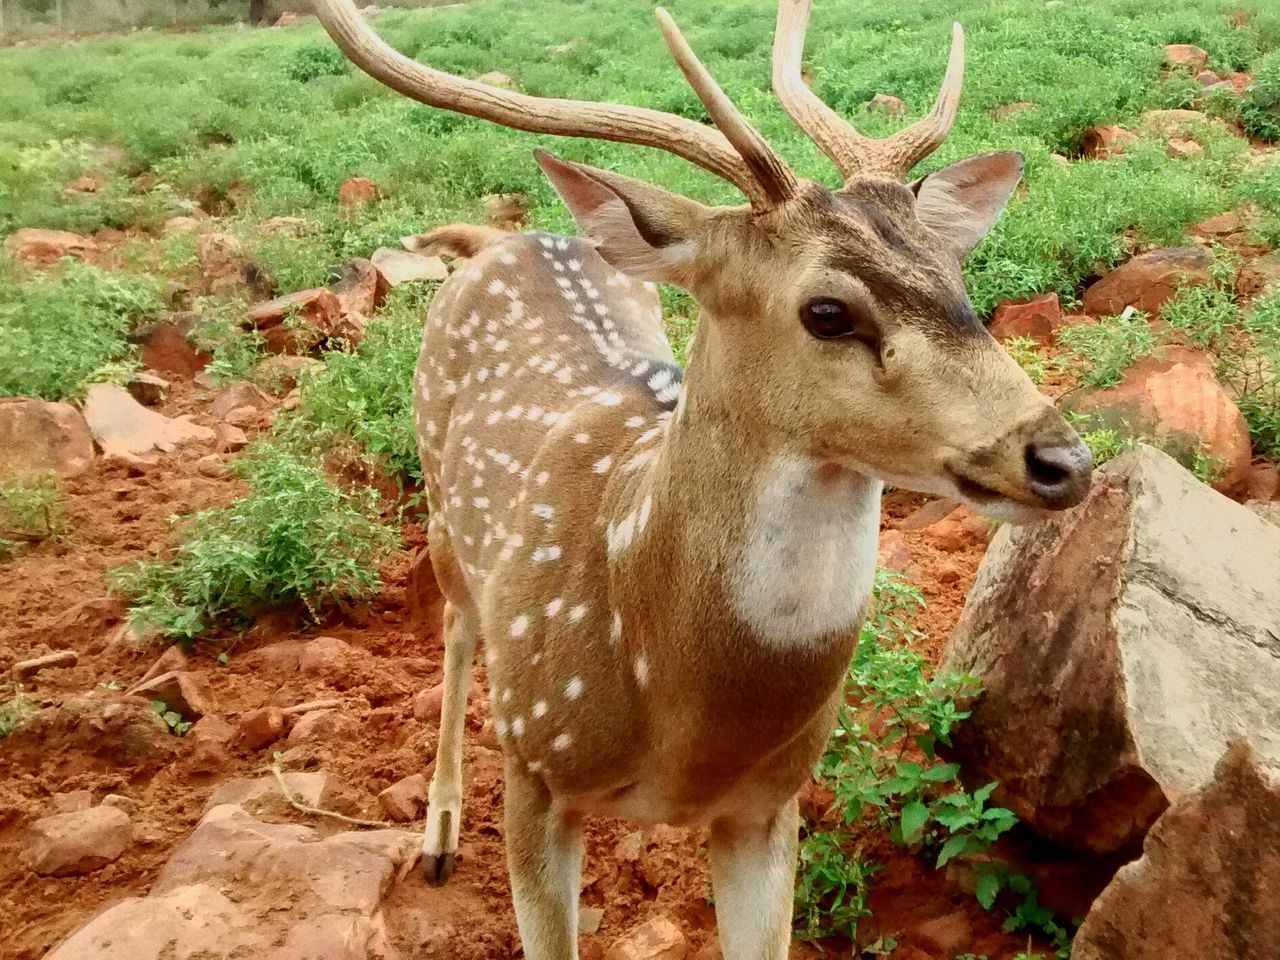 Those eyes that say something as we stare Wildlife & Nature Wildlife Deer Deer Hunting Staring At The Sky Capturing Freedom Gazelle My Eyes Innocence Animal_collection